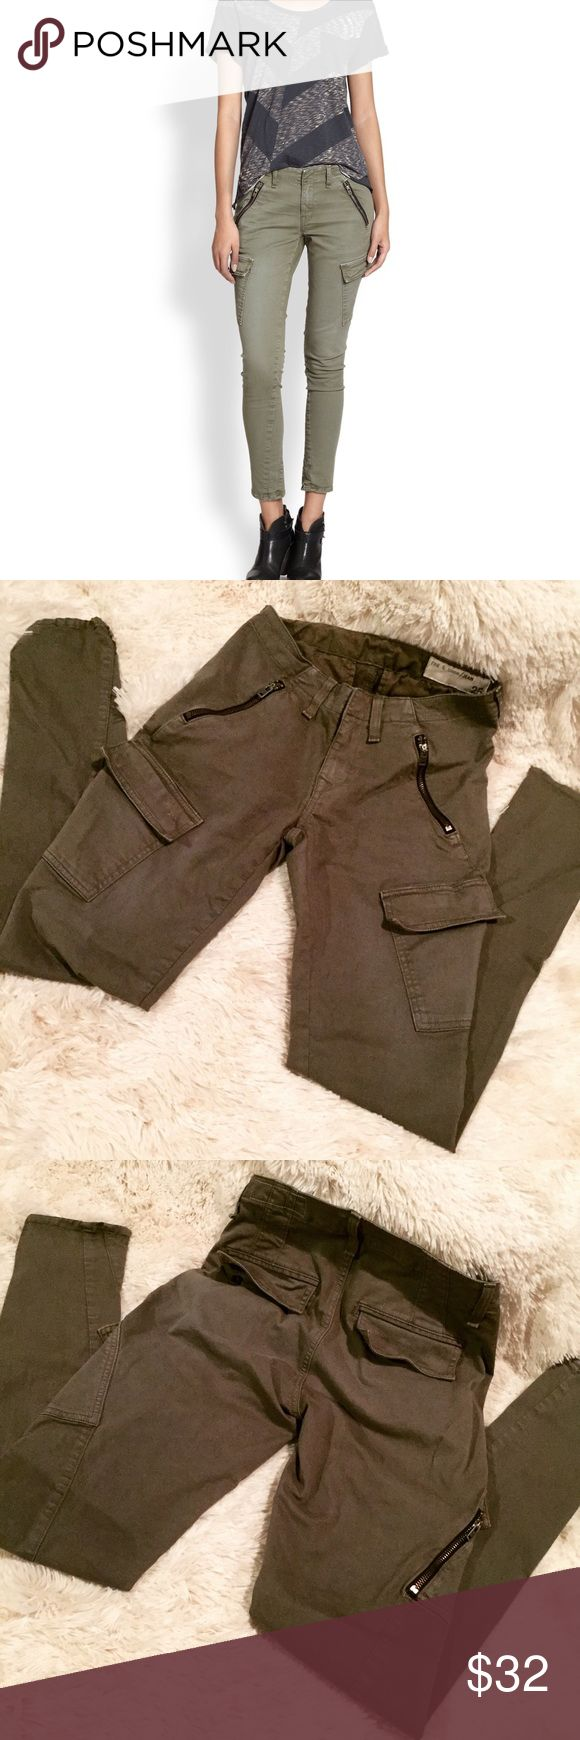 Rag & Bone Army Green Cargo Skinny Jeans Guaranteed authentic. Excellent used condition! Flaws include: none  Super cute at an affordable price. Ask to bundle for a discount. No free ship! rag & bone Jeans Skinny